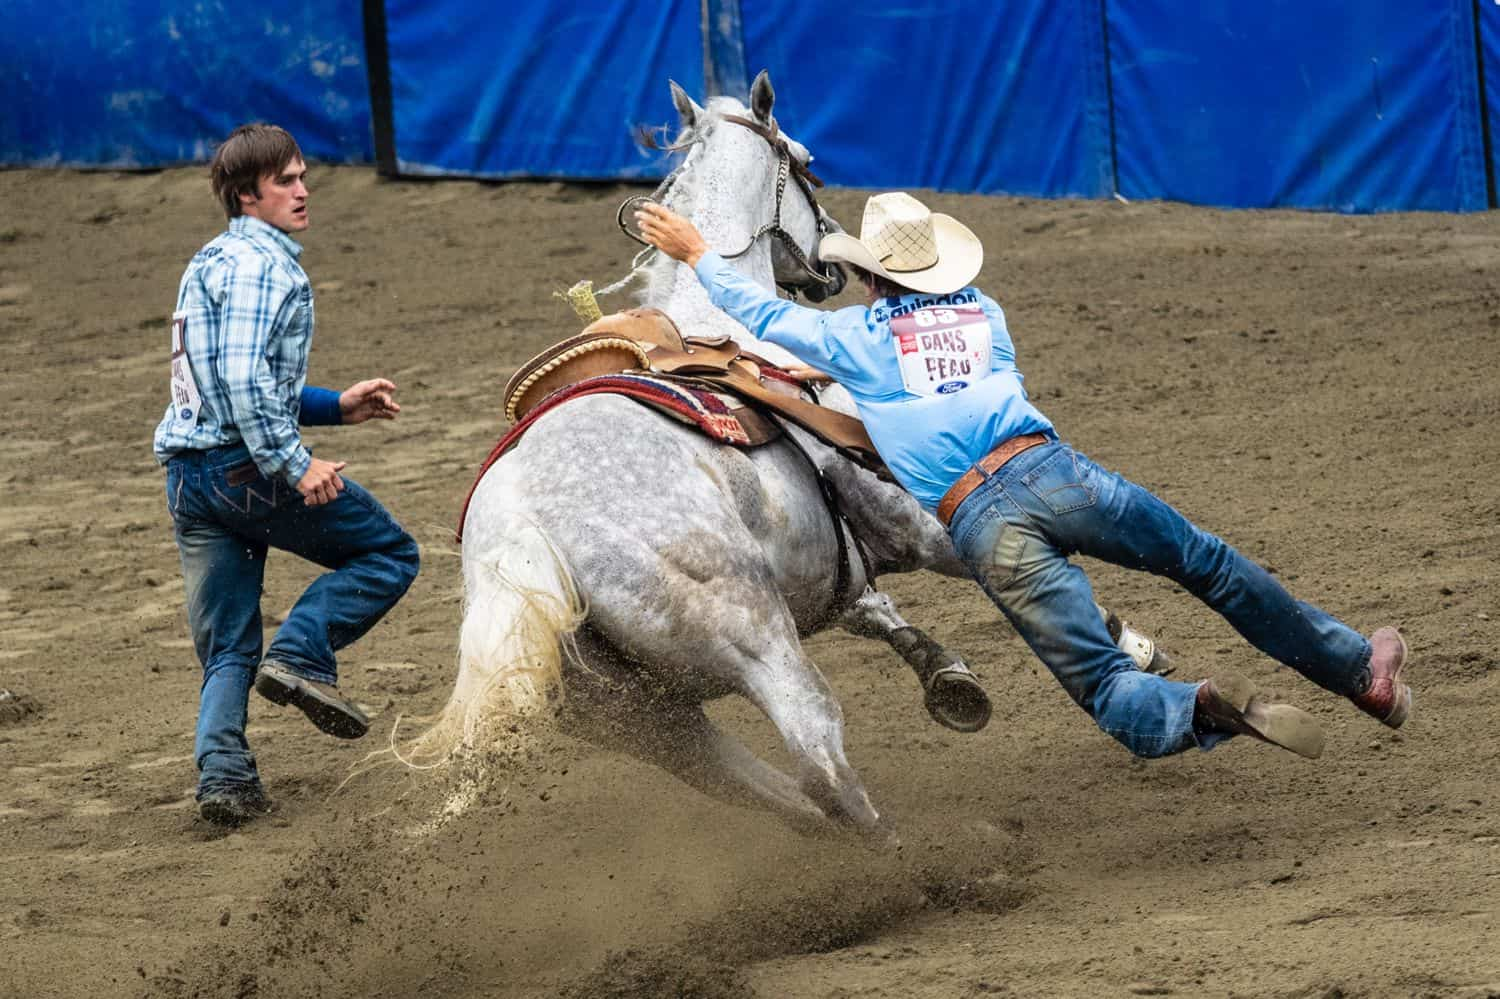 Two men in a rodeo event